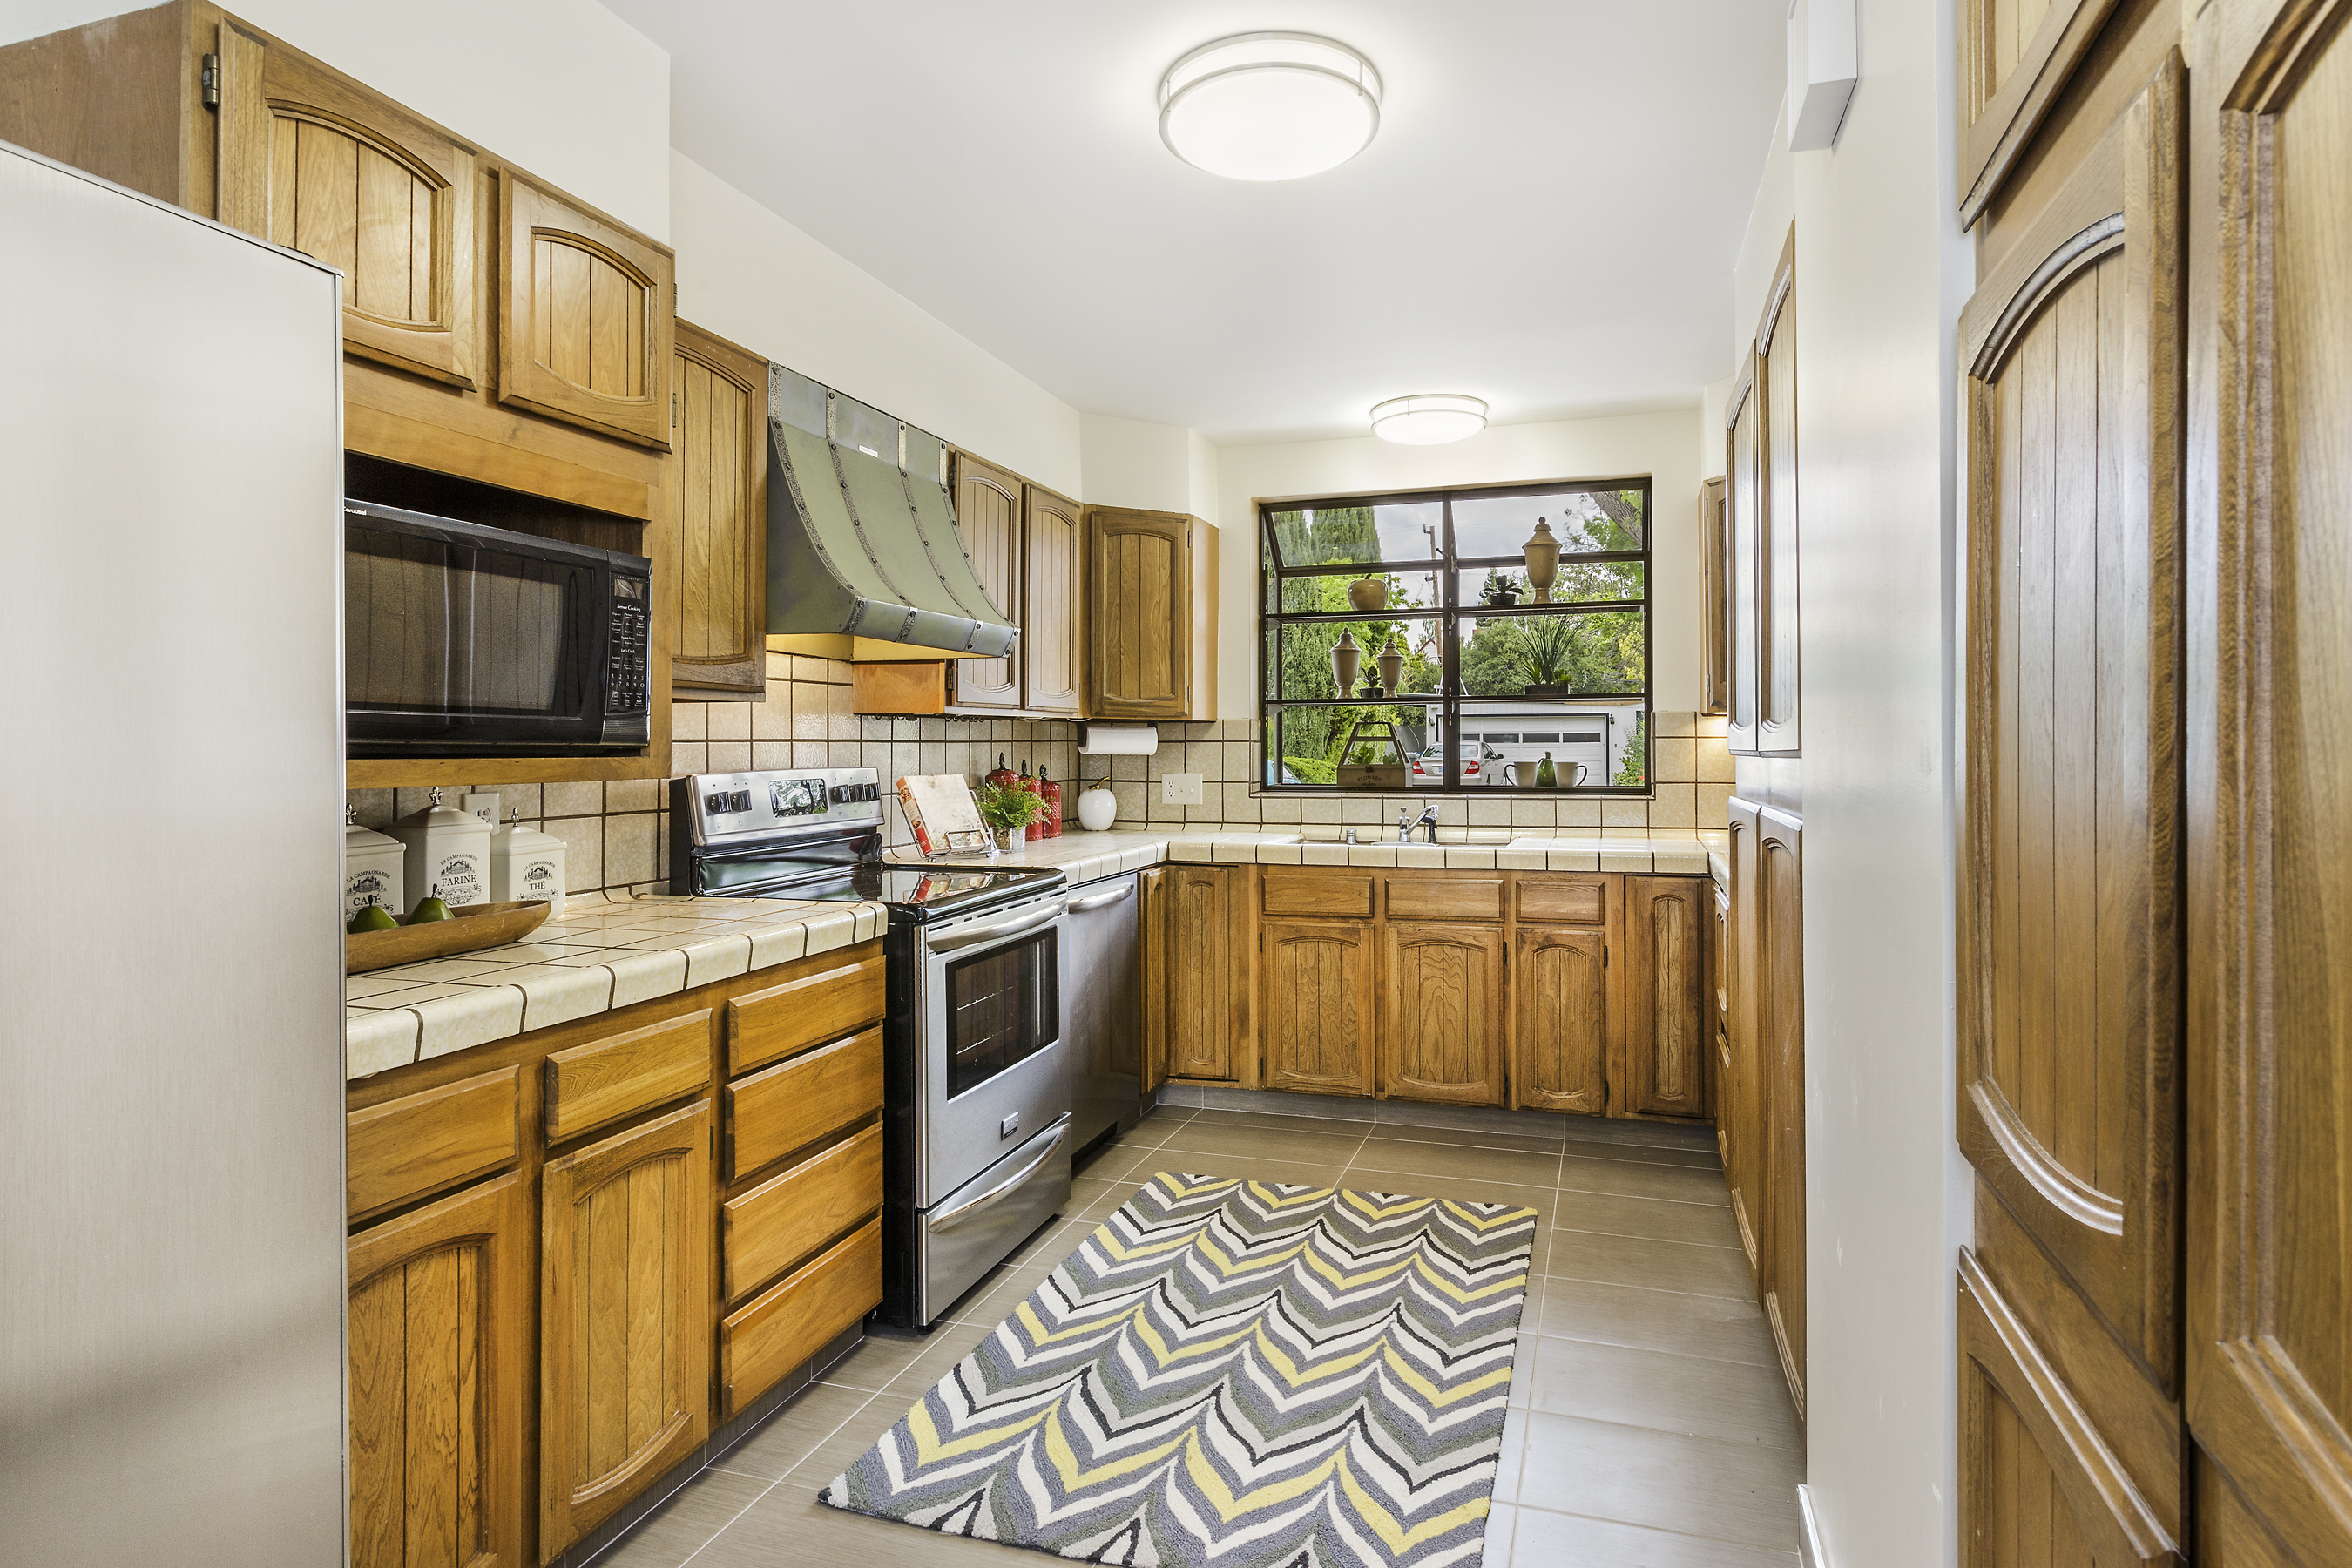 09-172-Atherwood-kitchen-high-res